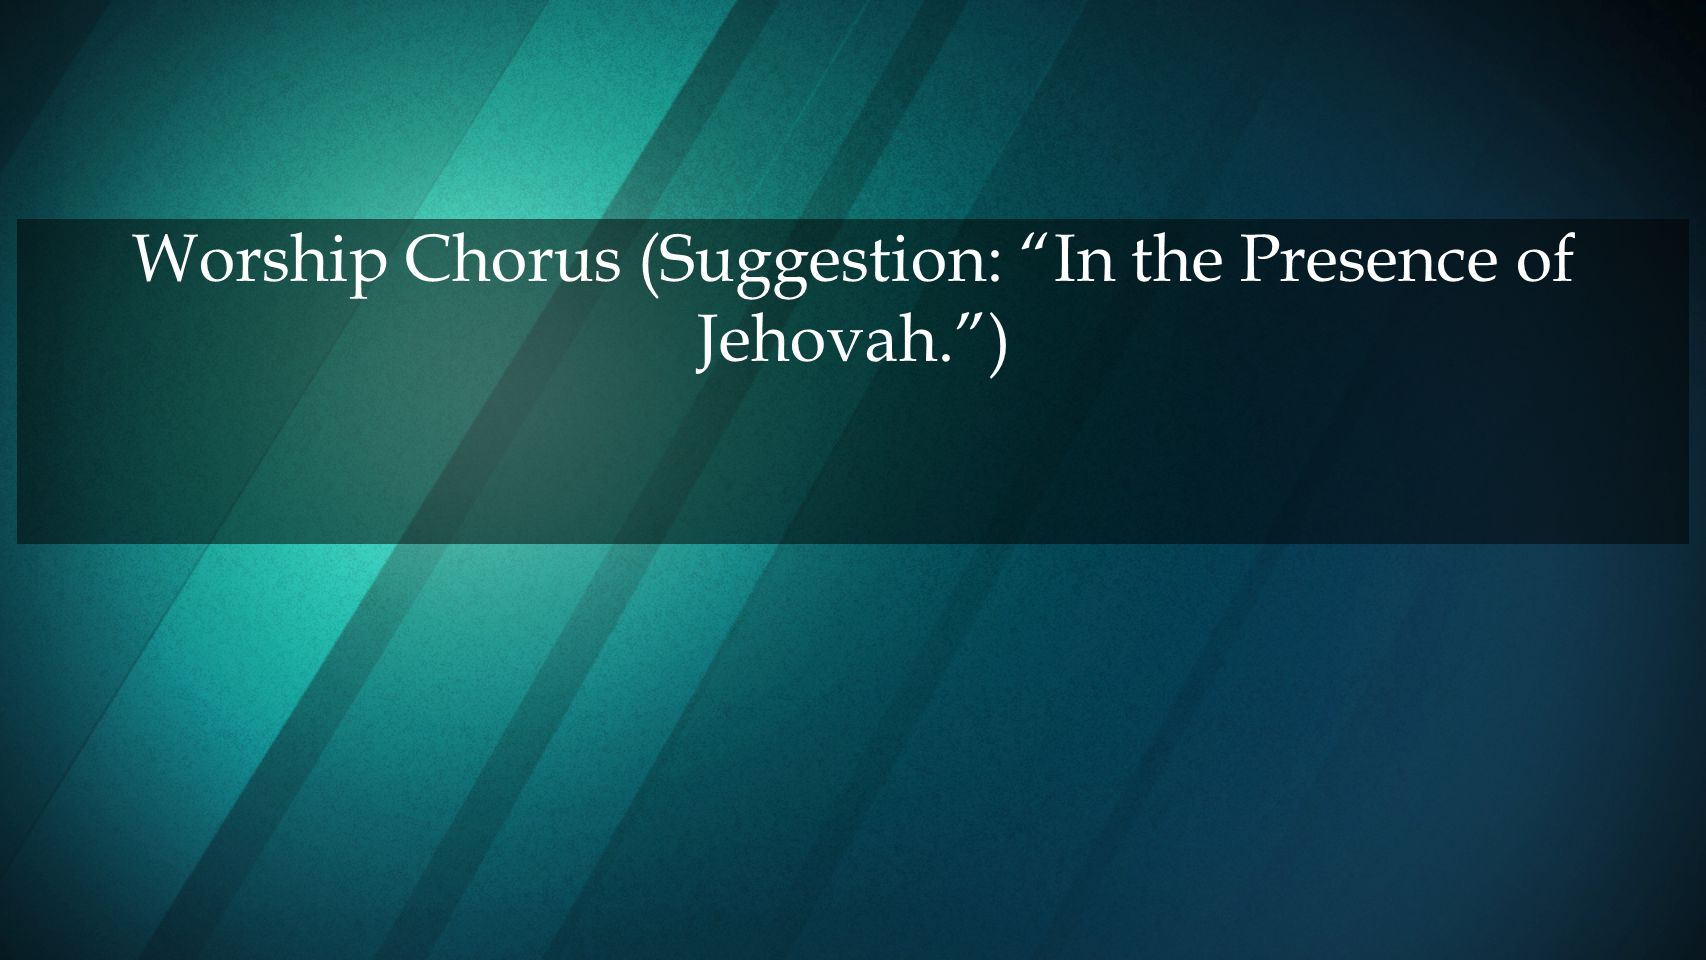 Worship Chorus (Suggestion: In the Presence of Jehovah. )